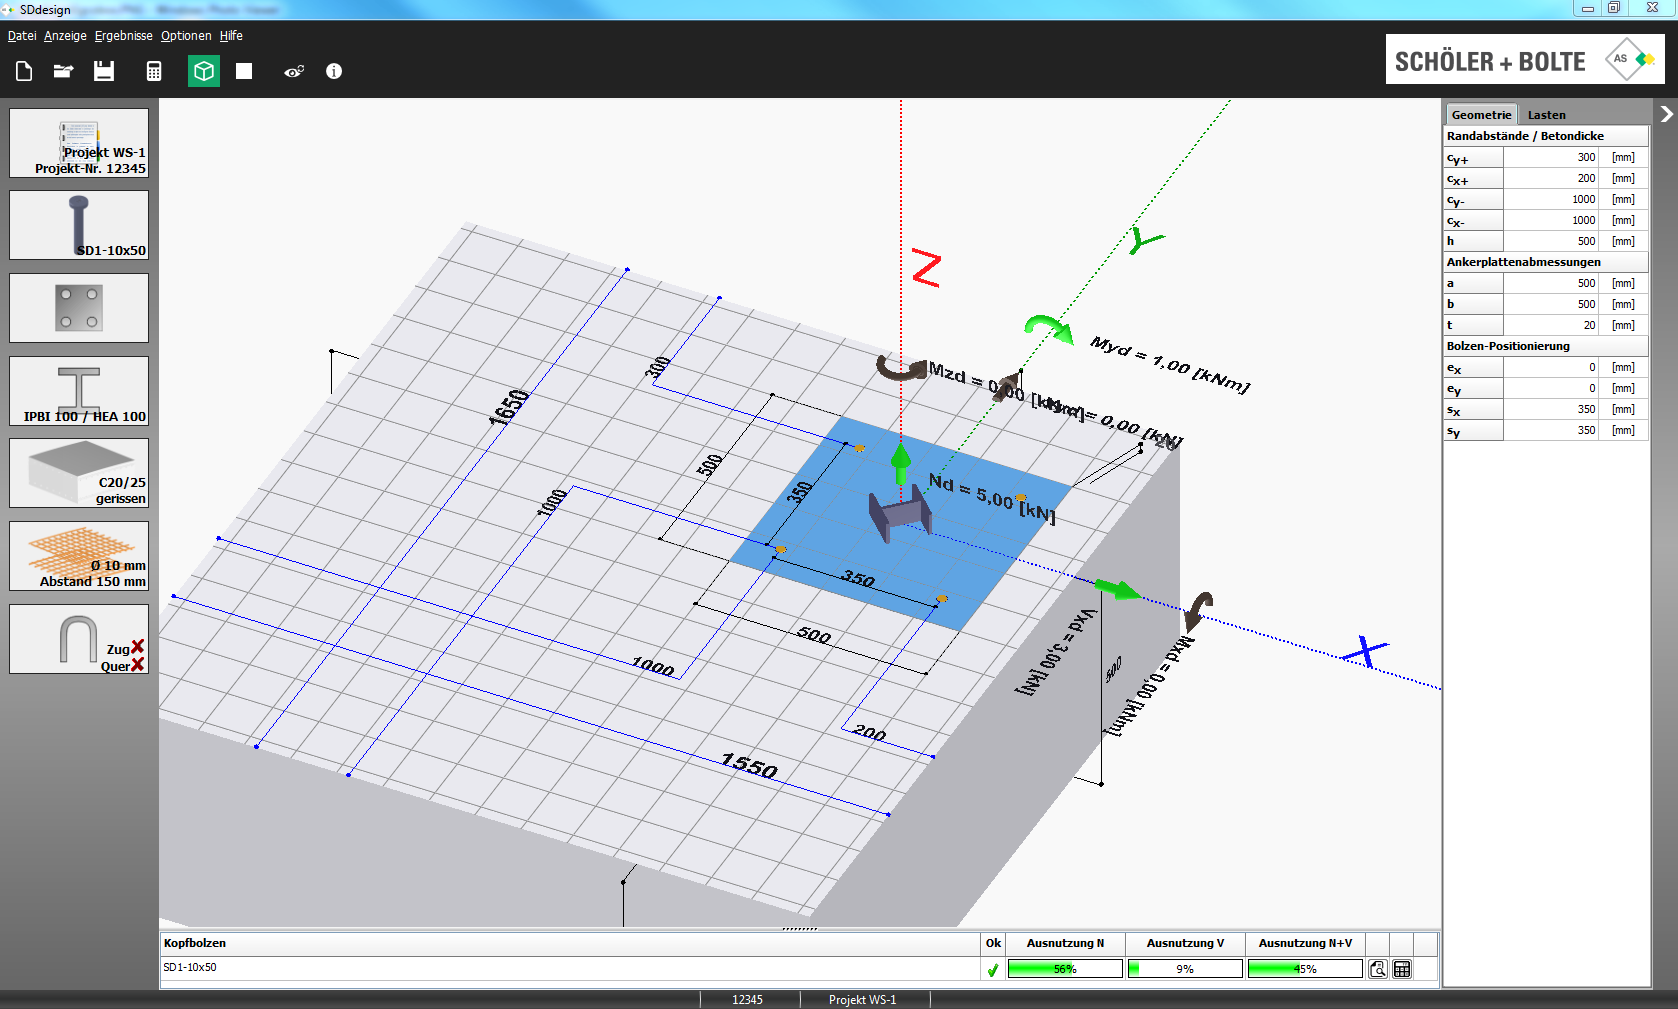 Software development nolasoft for as schler bolte gmbh the cast in headed stud design software sddesign graphical user interface with 3d graphics calculation kernel and pdf ccuart Gallery